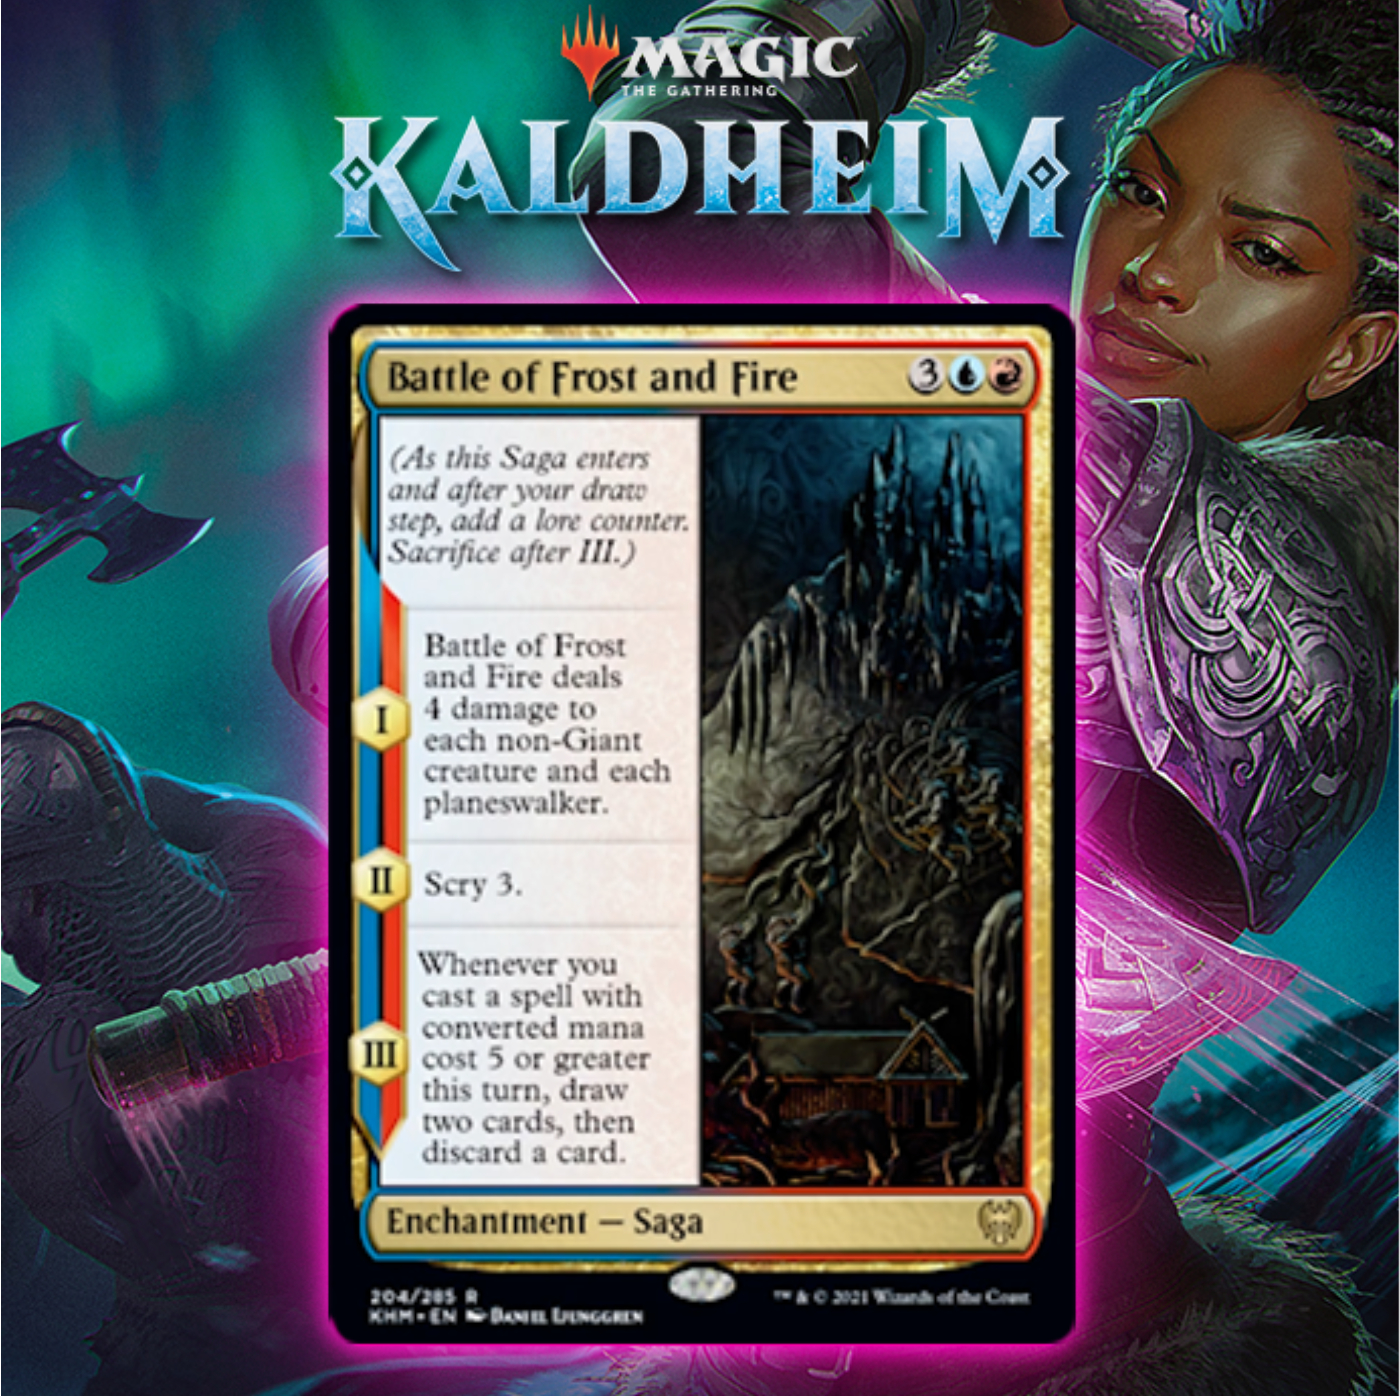 Izzet Gets Powerful Saga In Battle of Frost and Fire In Kaldheim